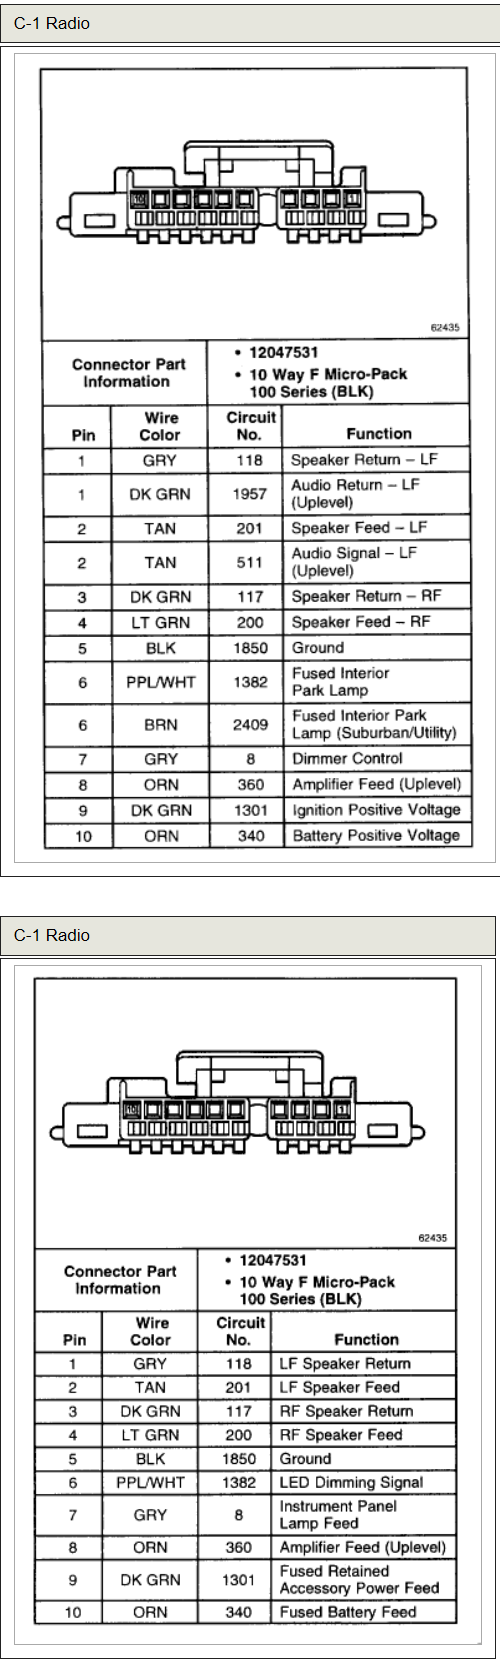 Chevrolet Car Radio Stereo Audio Wiring Diagram Autoradio Connector 07 Chevy Uplander Diagrams Wire Installation Schematic Schema Esquema De Conexiones Anschlusskammern Konektor